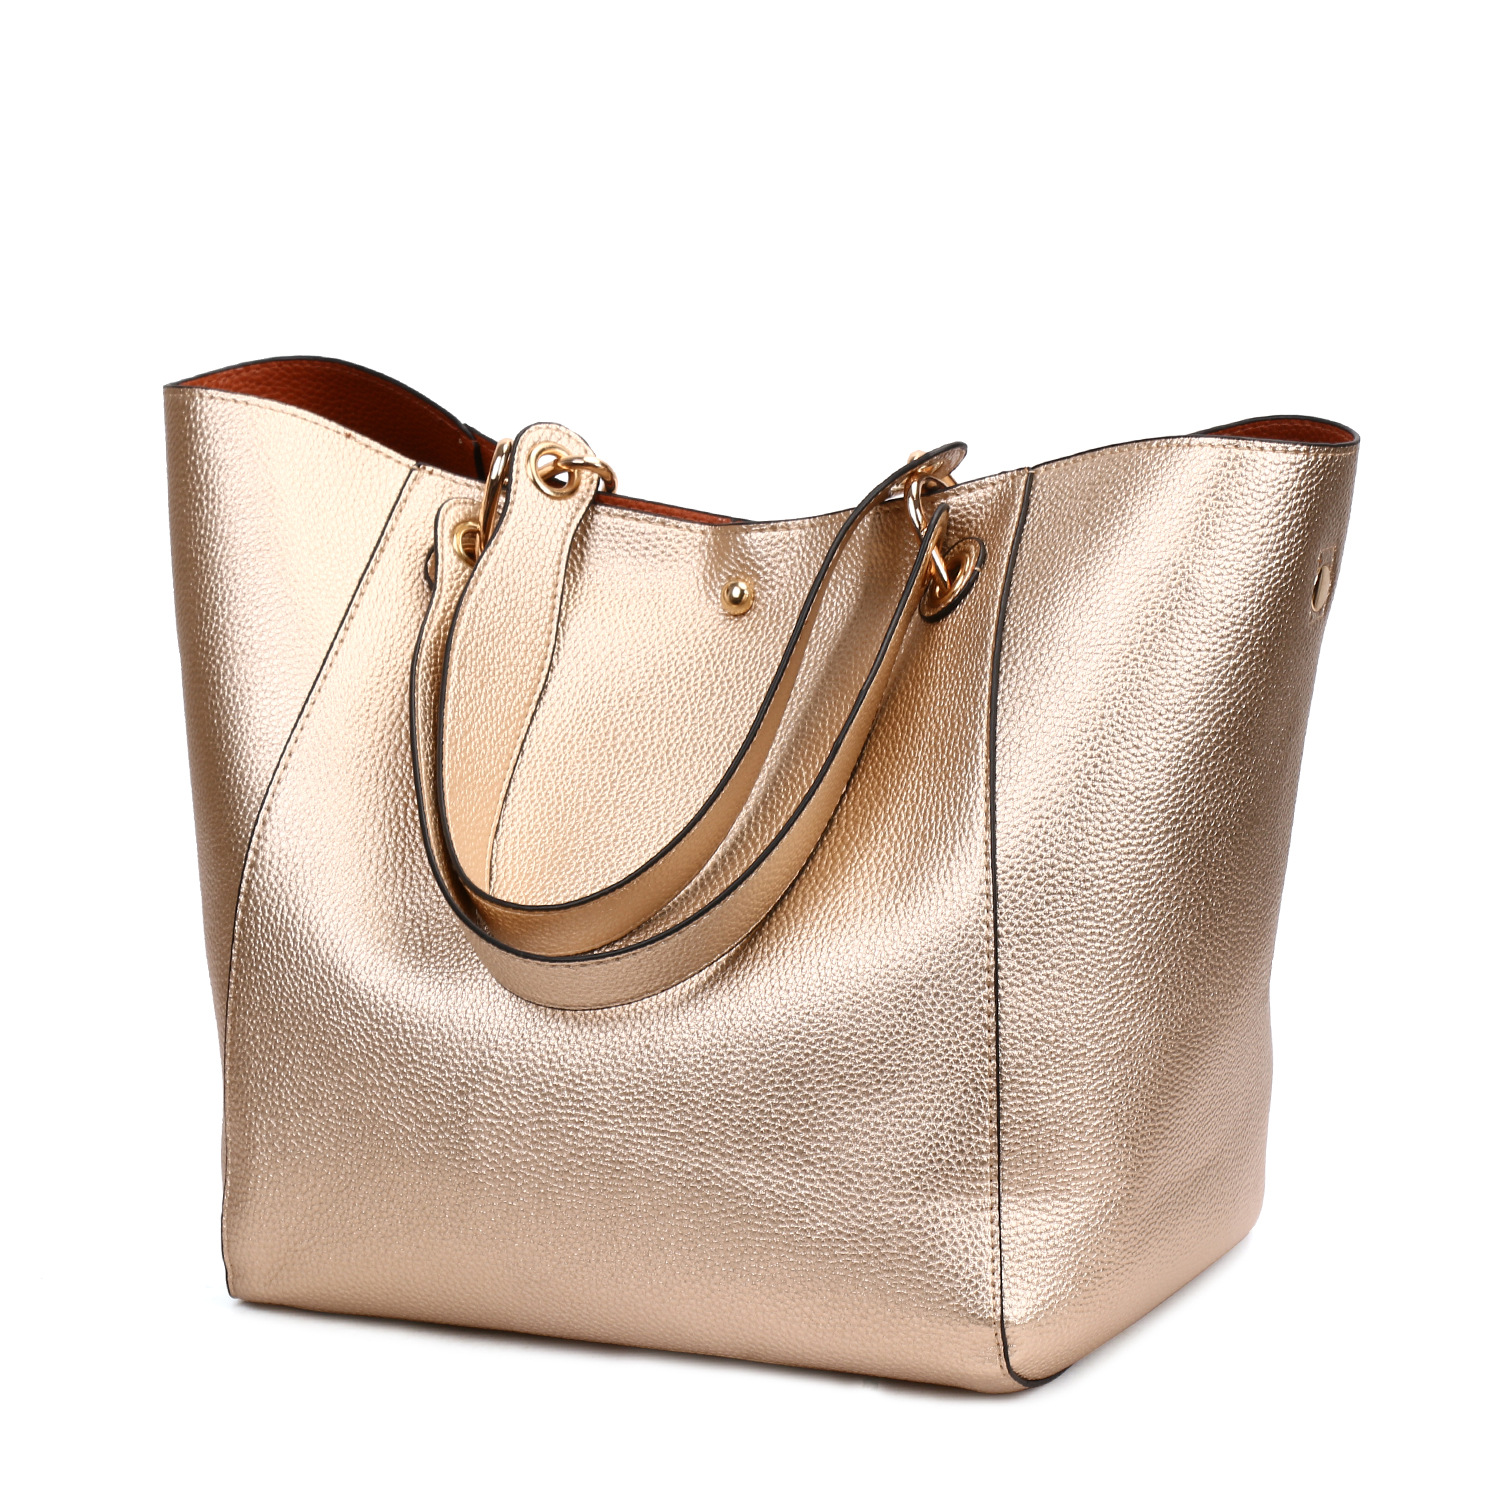 New Fashion women Bag Handbags Leather s For  new Shoulder  Female Large Capacity Tote Ladies Shopping s 2 SetsNew Fashion women Bag Handbags Leather s For  new Shoulder  Female Large Capacity Tote Ladies Shopping s 2 Sets